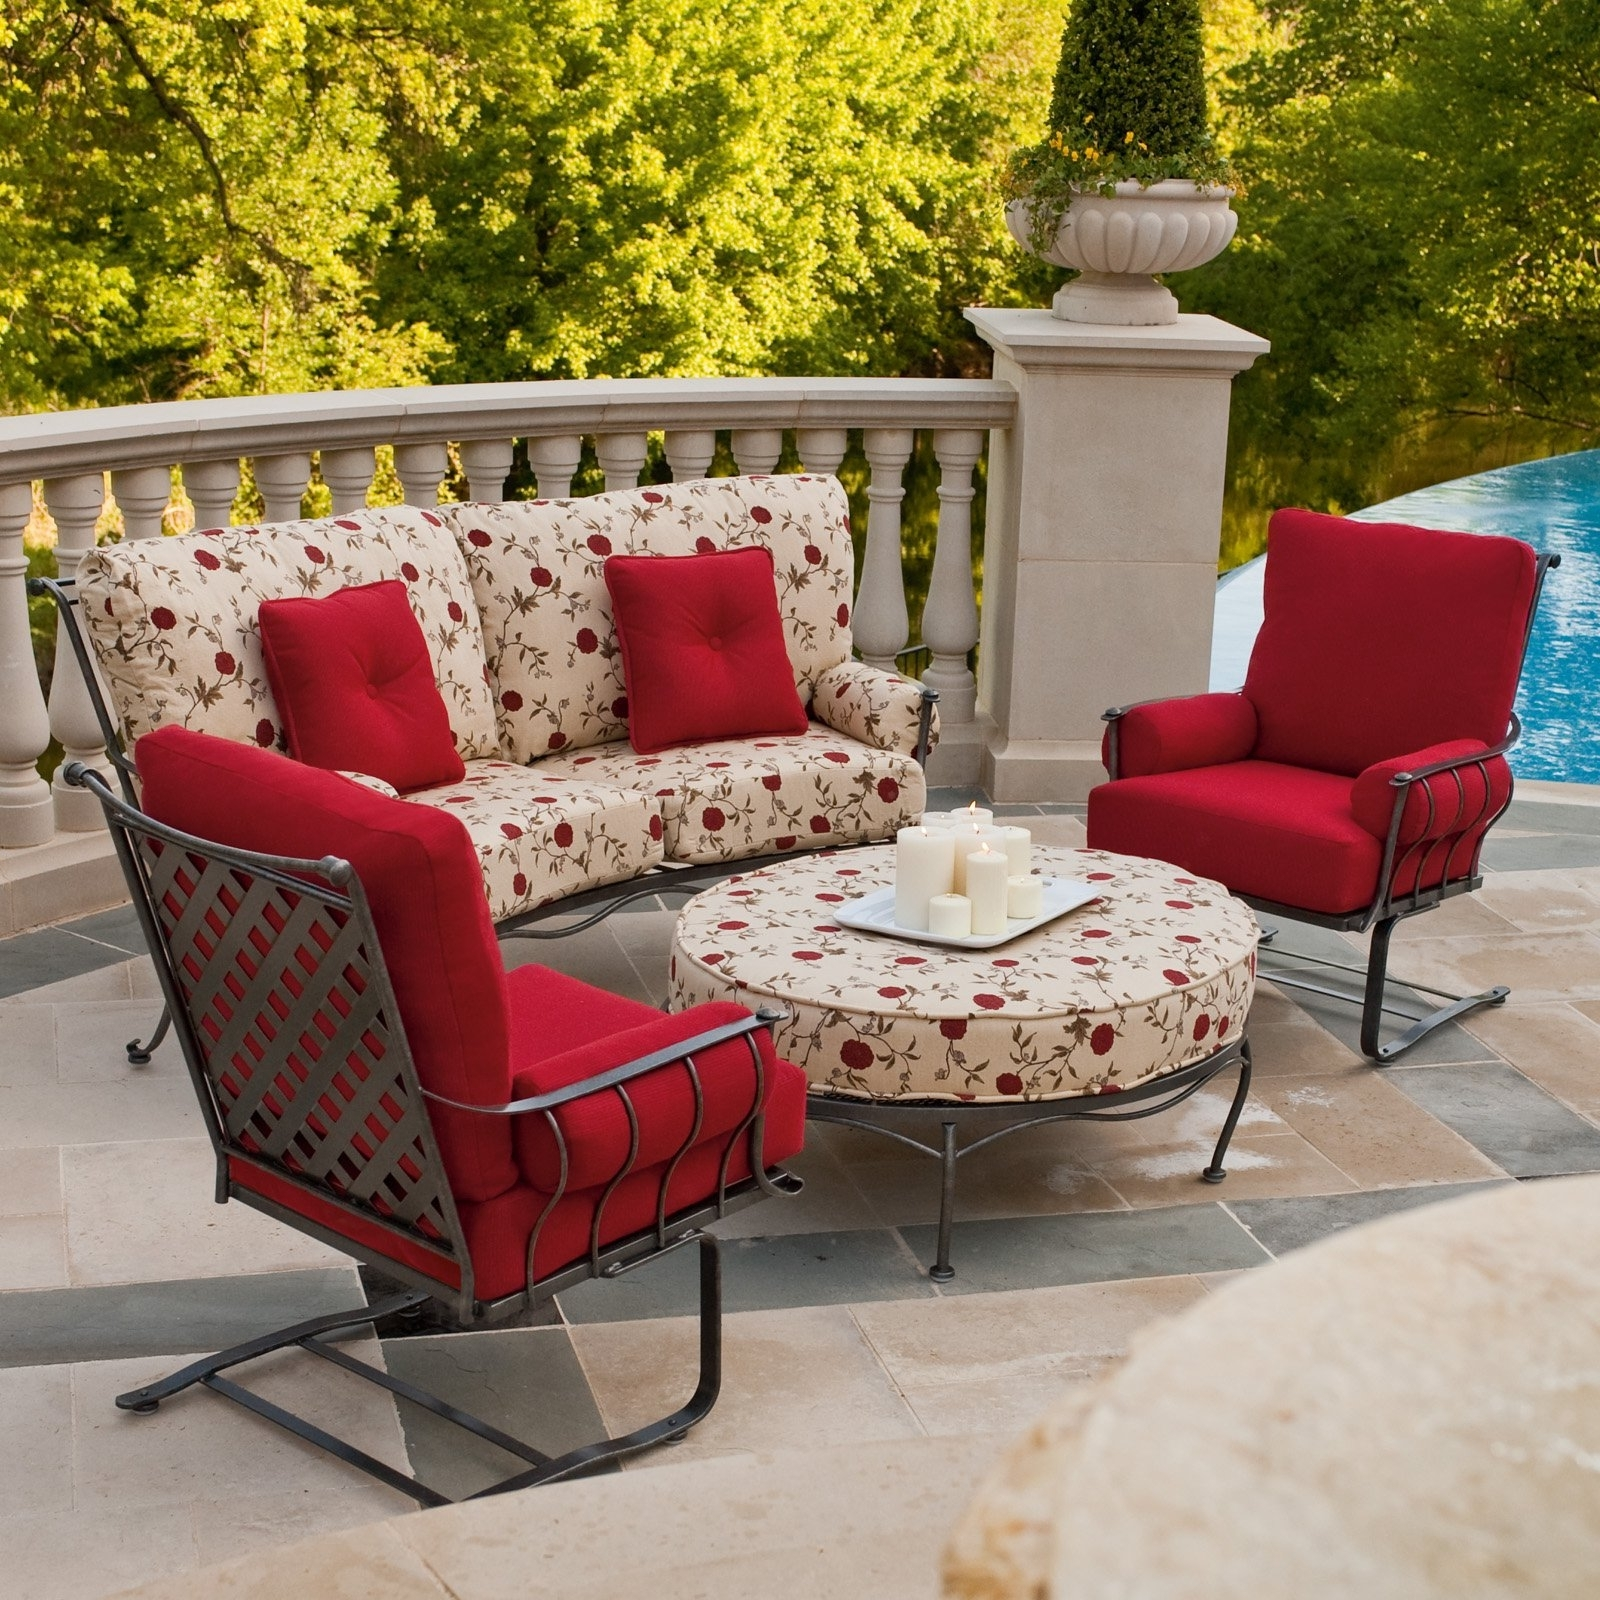 Patio Conversation Sets With Ottomans With Regard To Well Known Outdoor Chair And Ottoman Set Beautiful Patio Conversation Sets With (View 13 of 20)